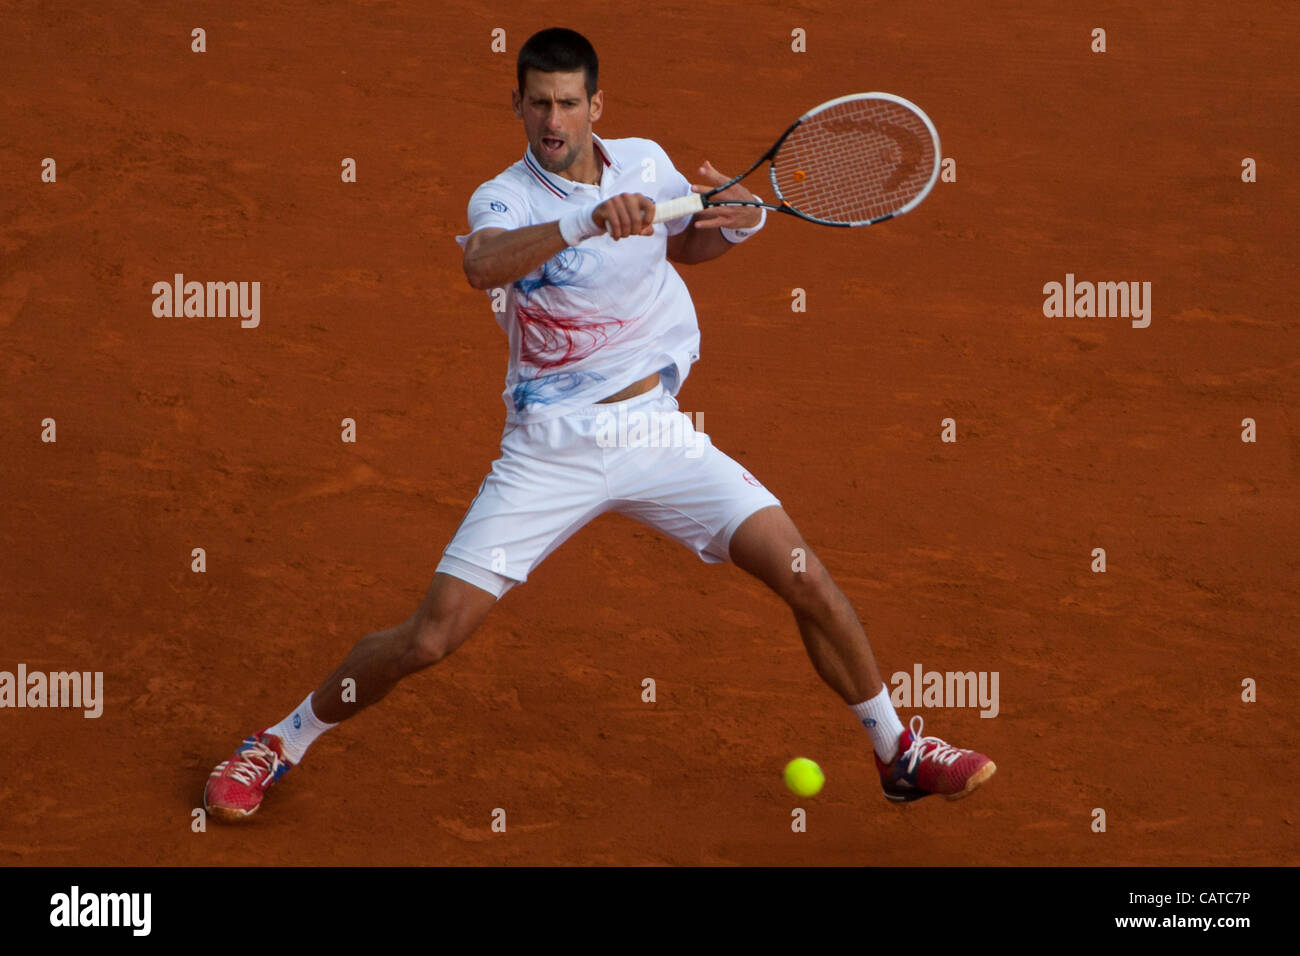 19/04/2012 Monte Carlo, Monaco. in action during the 3rd round singles match between Novak Djokovic (SRB) and Alexandr - Stock Image